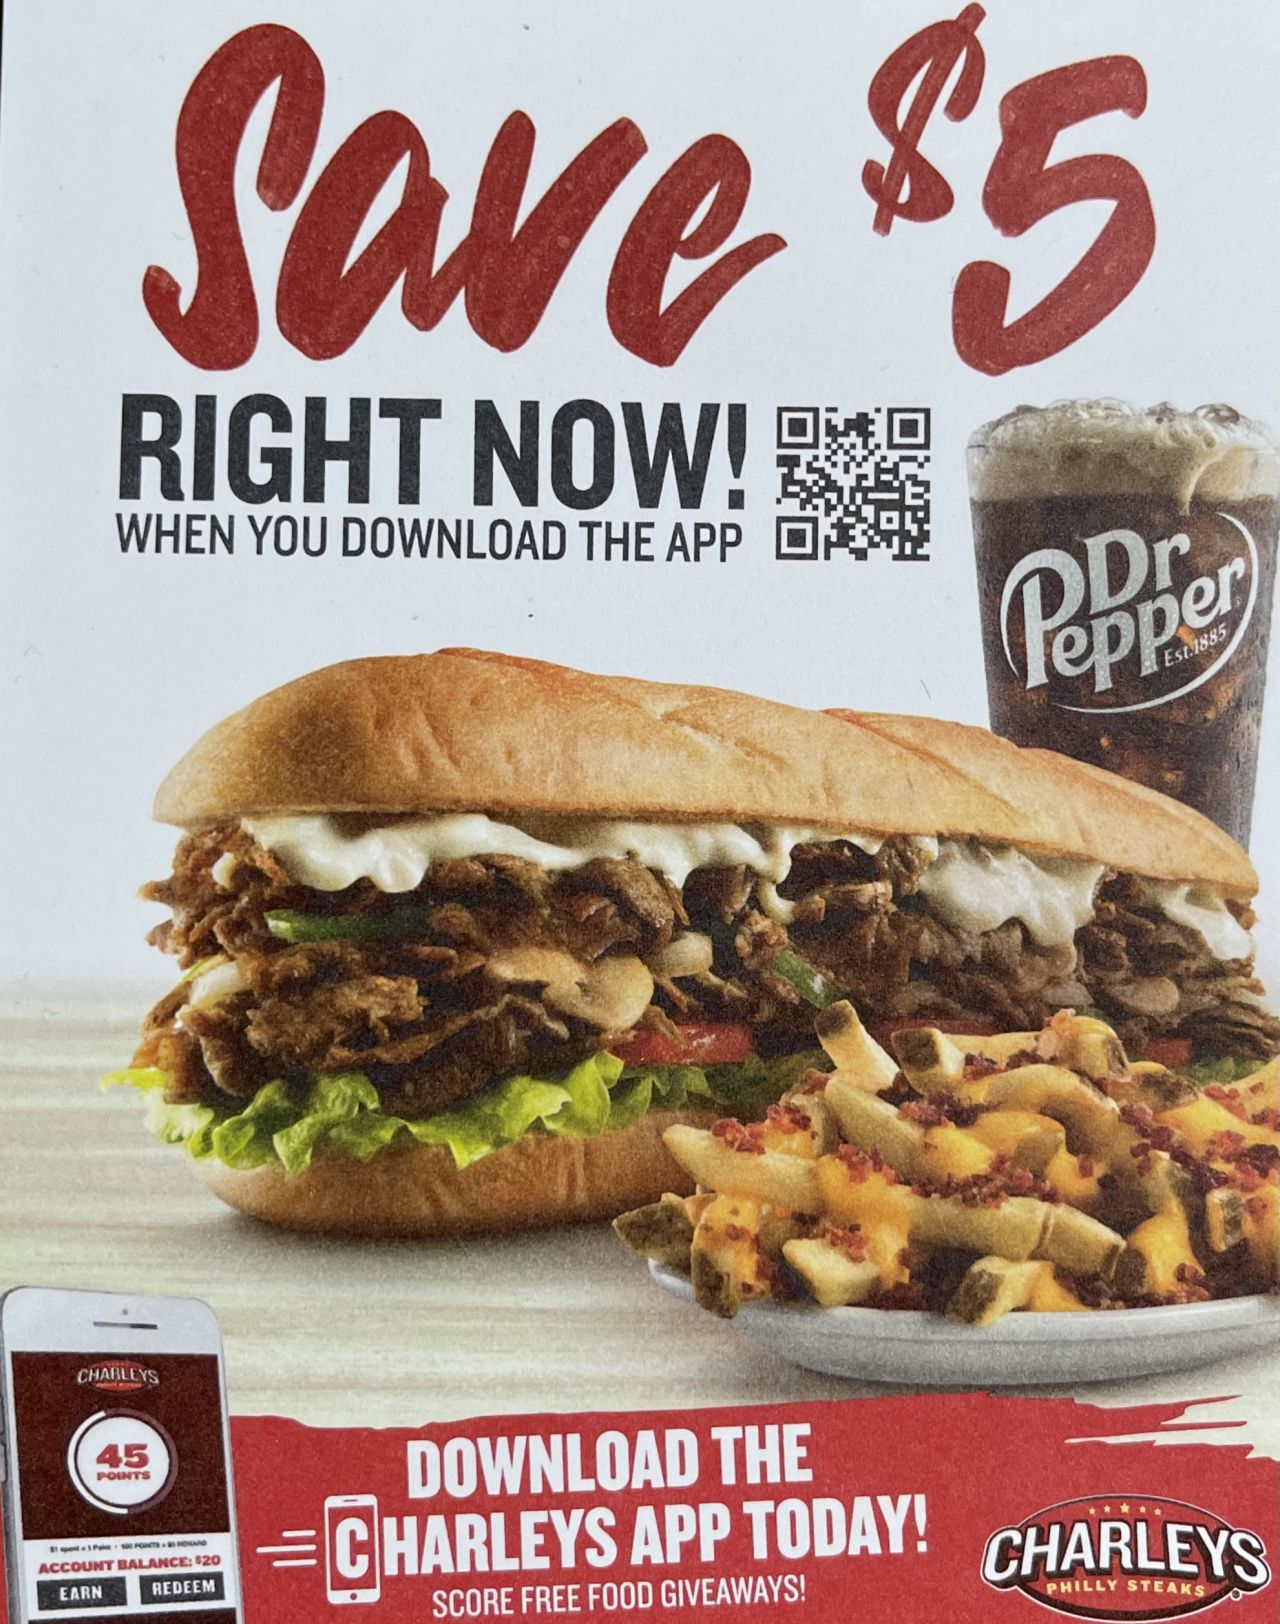 $5.00 Off First Order New Charley's App